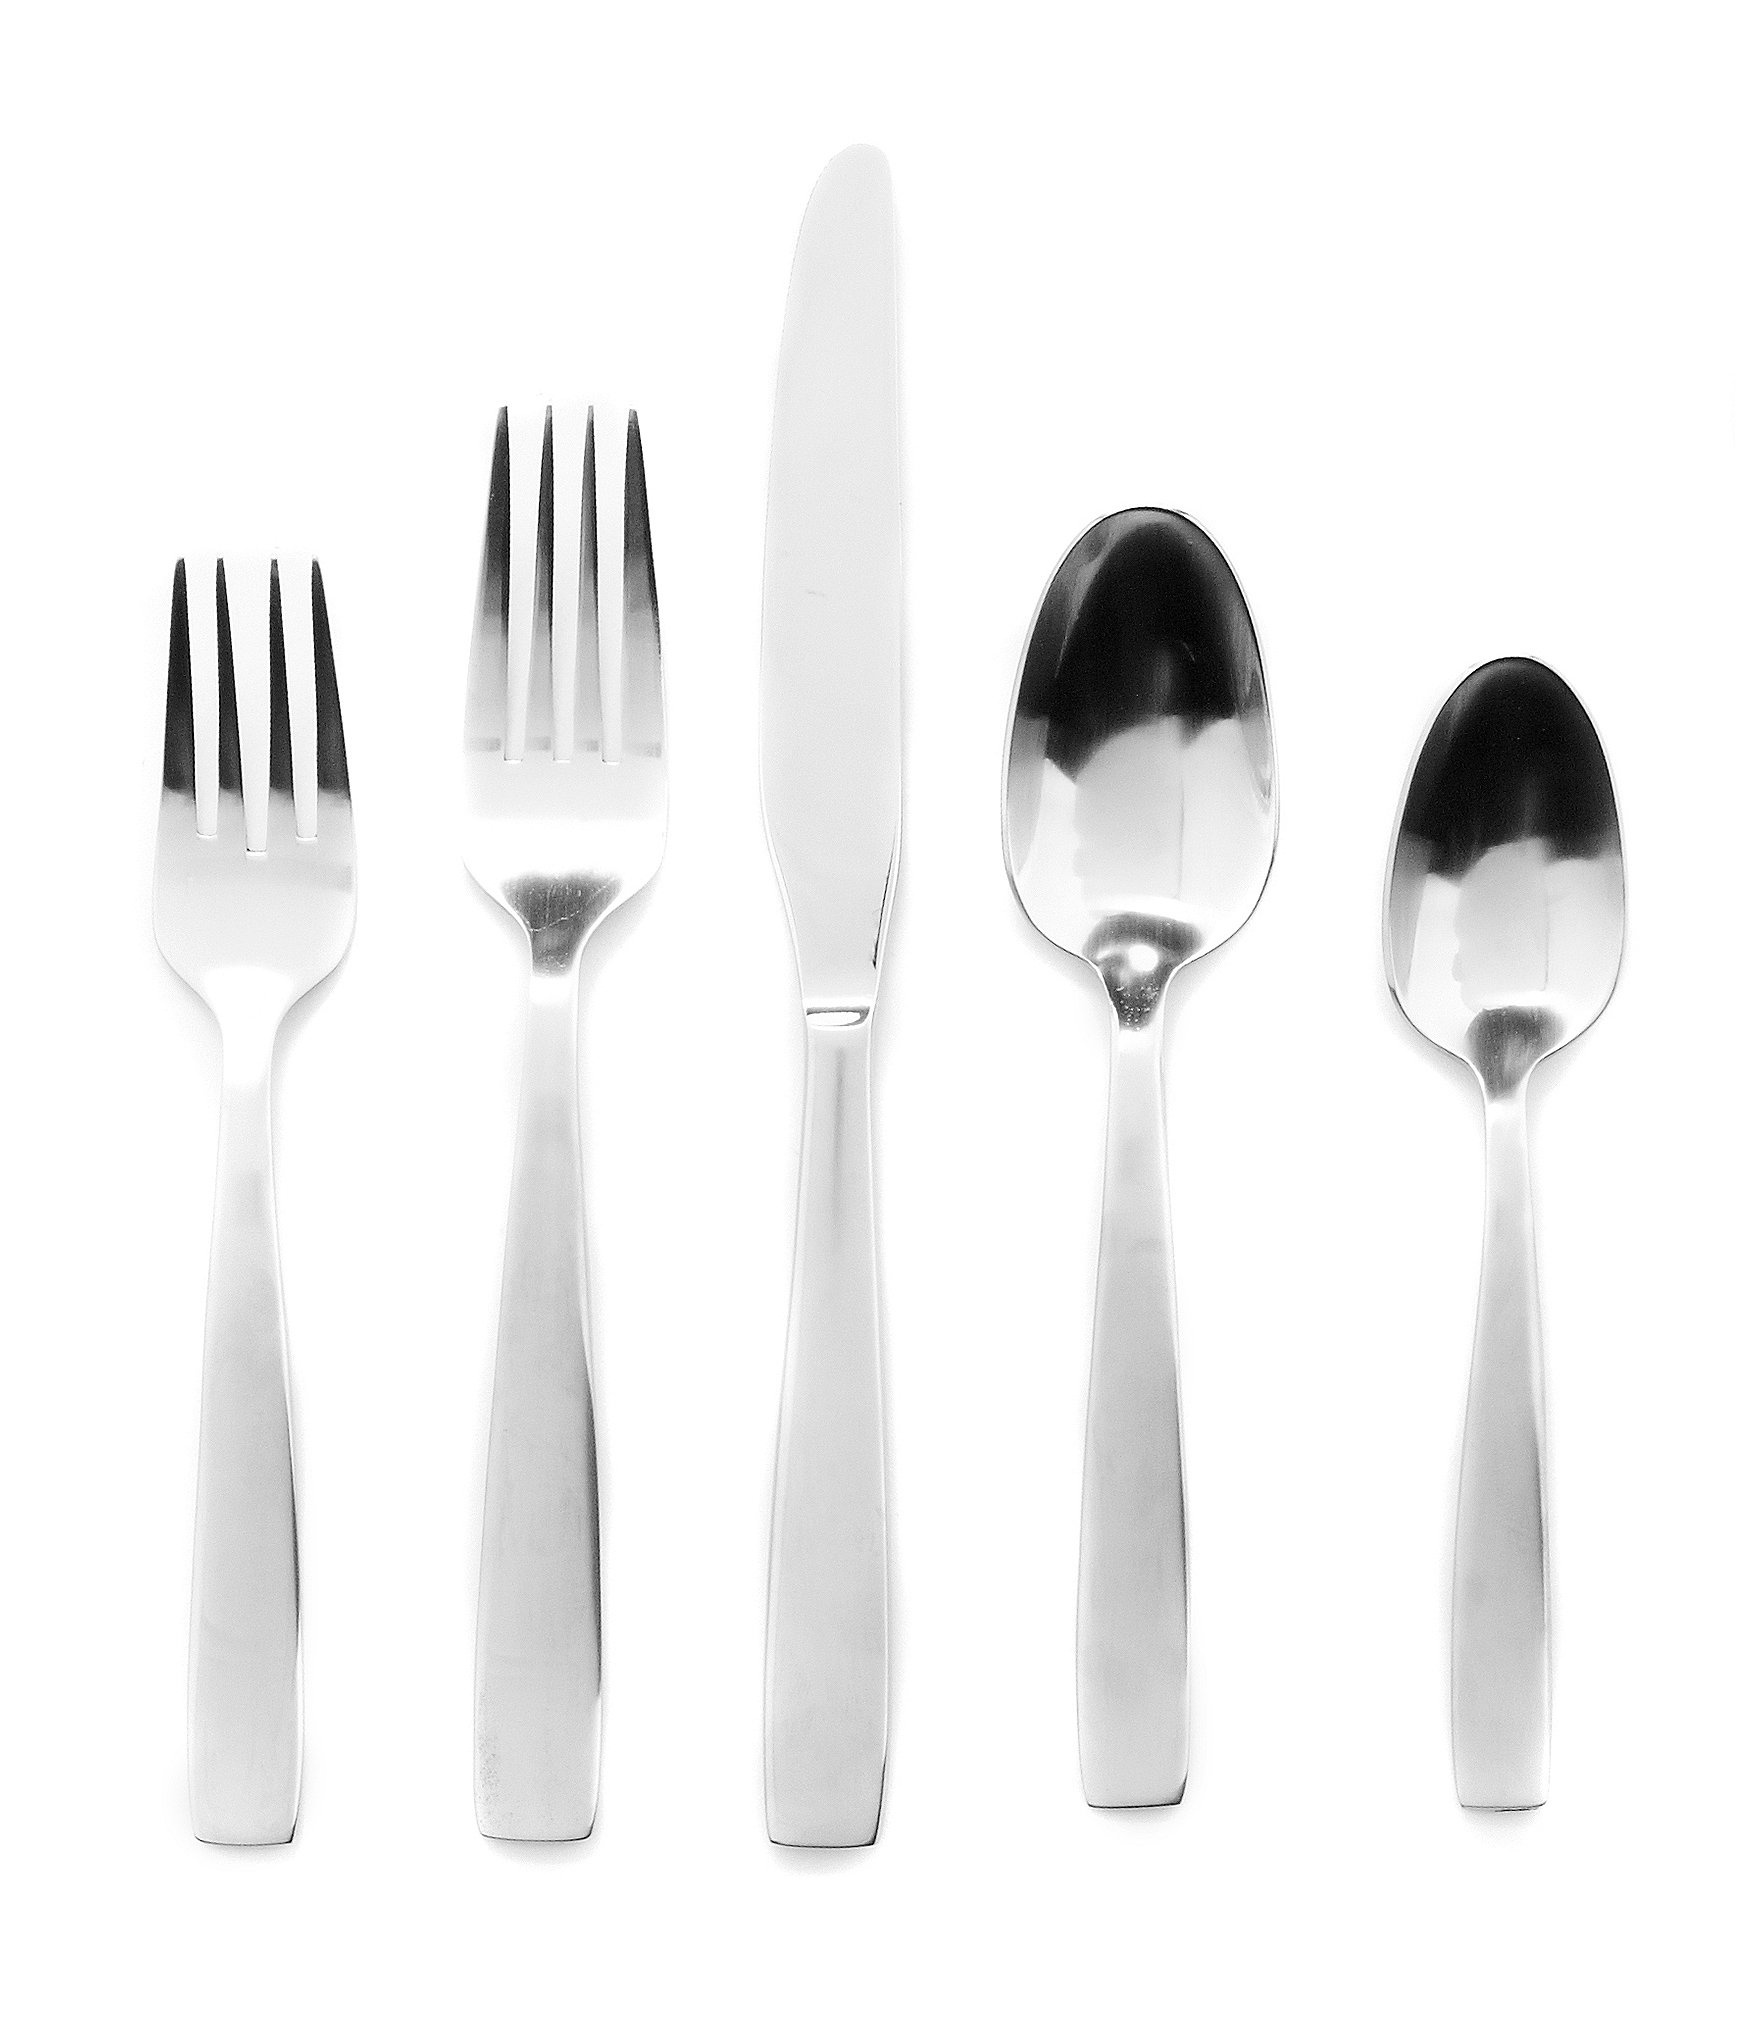 Contemporary Stainless Steel Flatware Oneida Everdine Modern Stainless Steel Flatware Dillards